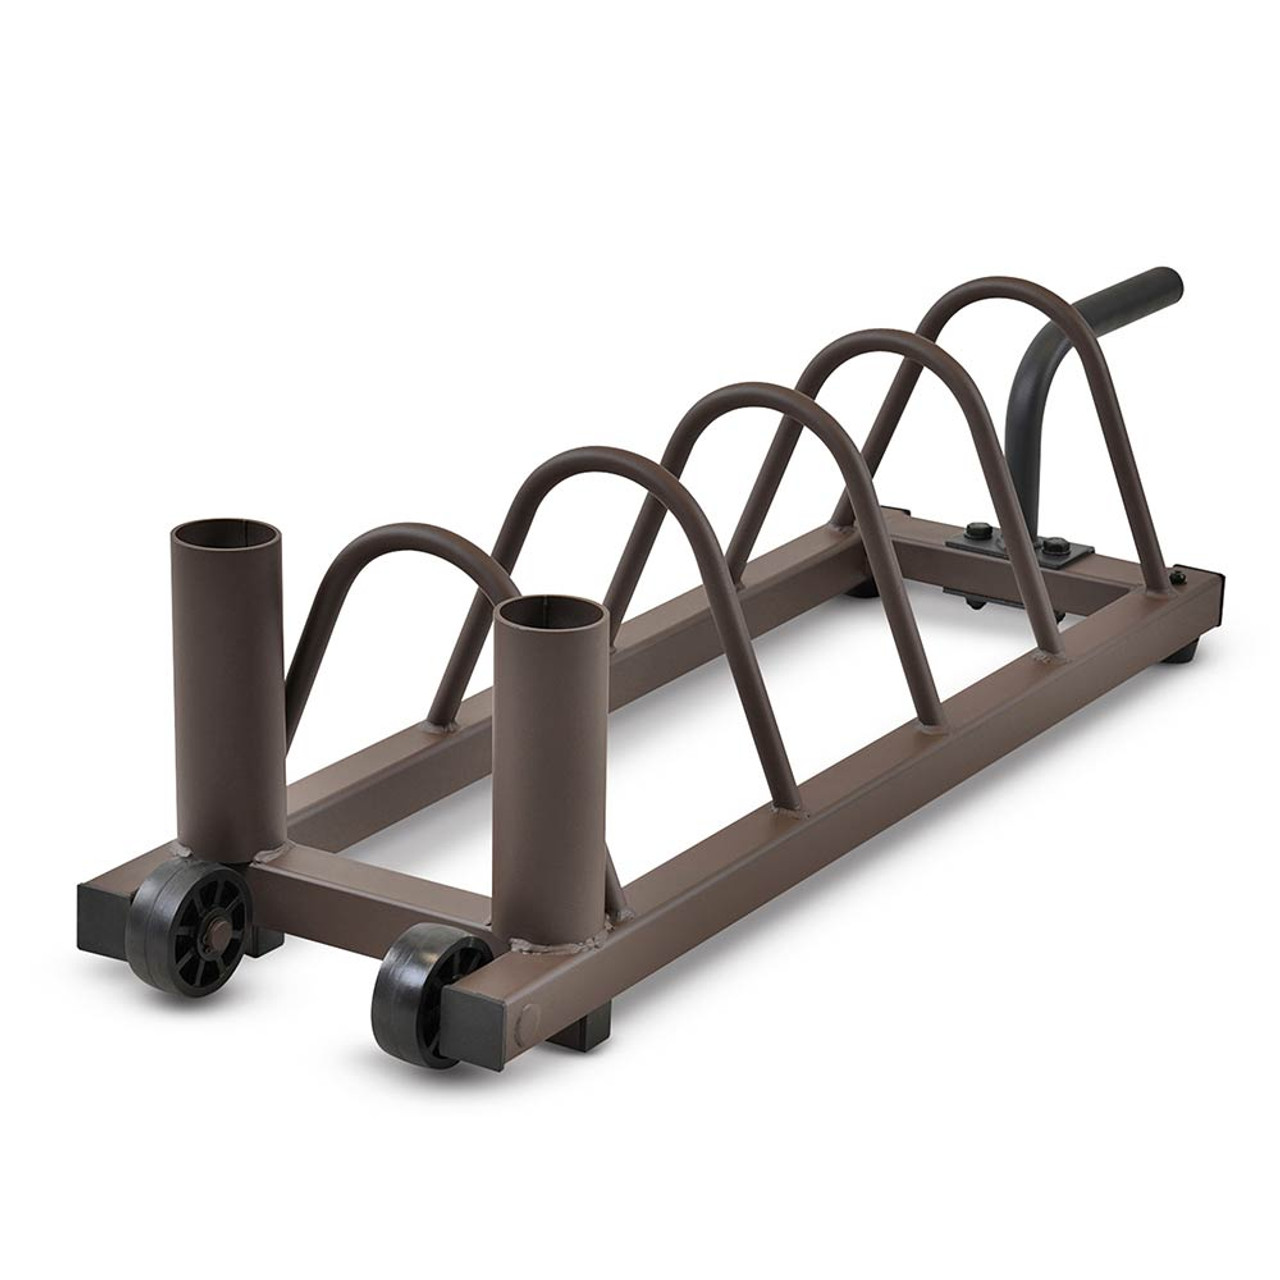 Horizontal Plate Rack SteelBody STB-0130 conveniently stores your olympic and standard plates  sc 1 st  MarcyPro & Horizontal Plate Rack | SteelBody STB-0130 Durable Heavy Duty Weight ...